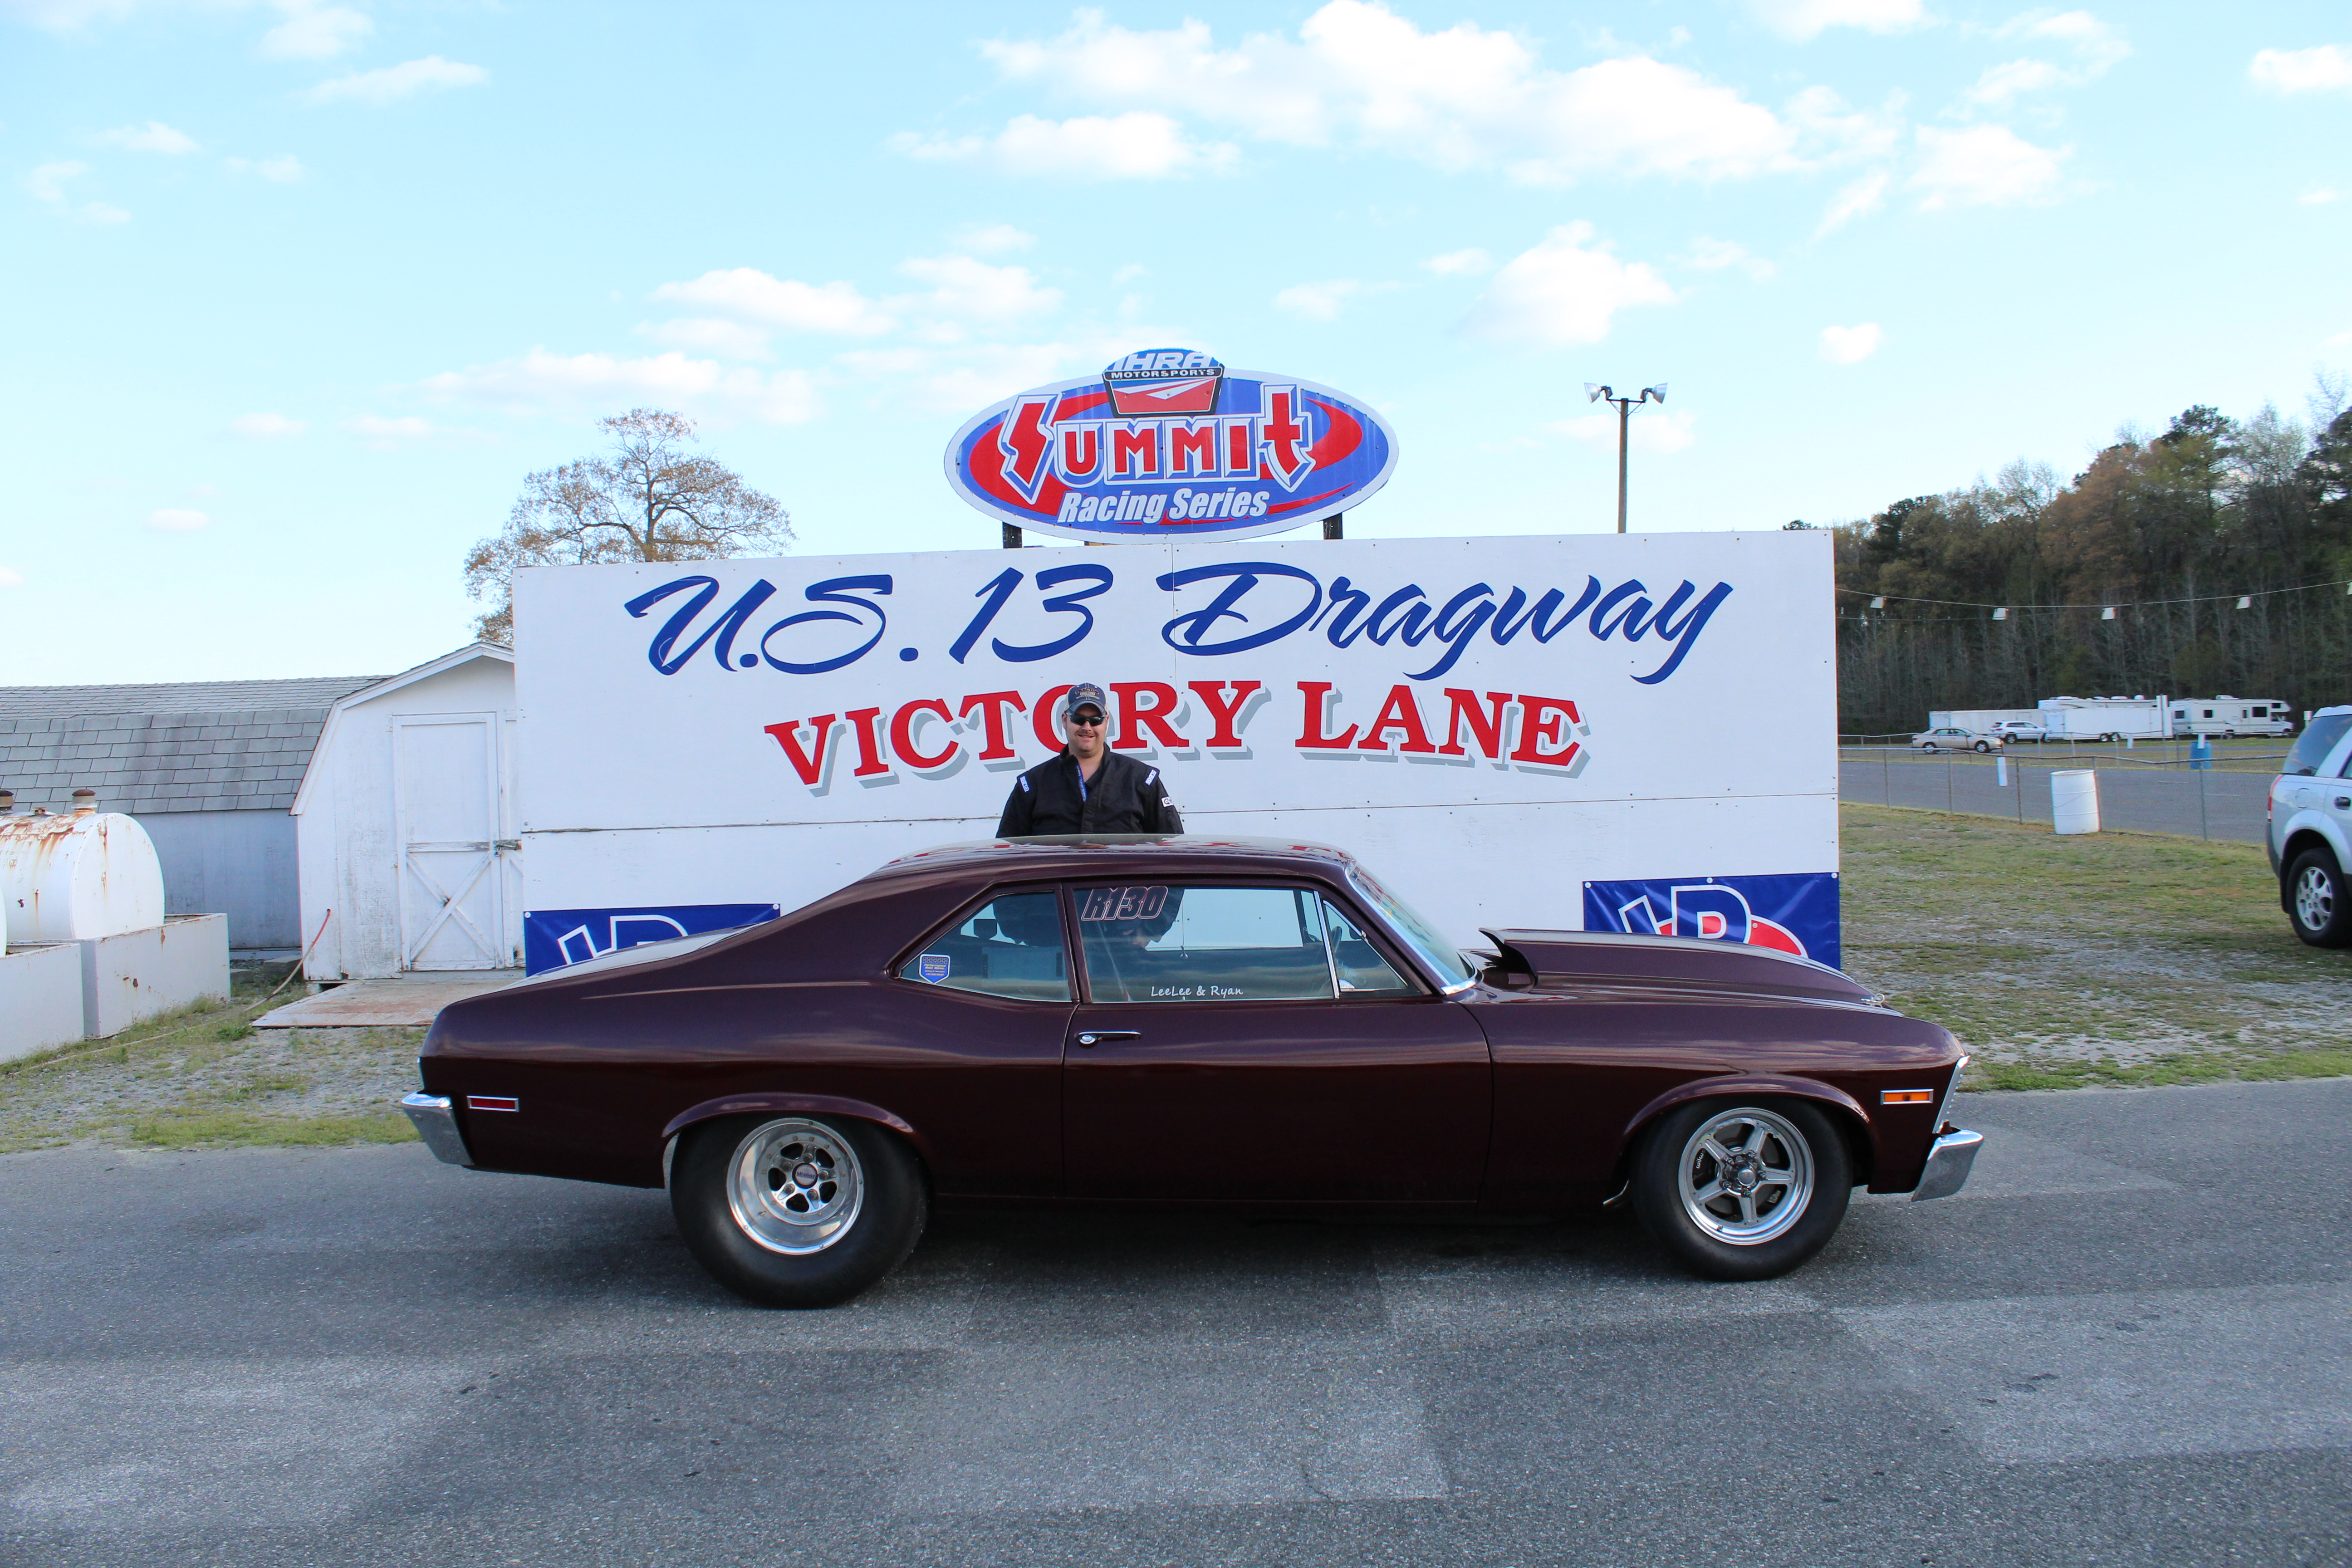 U.S. 13 Dragway Results – April 29, 2018